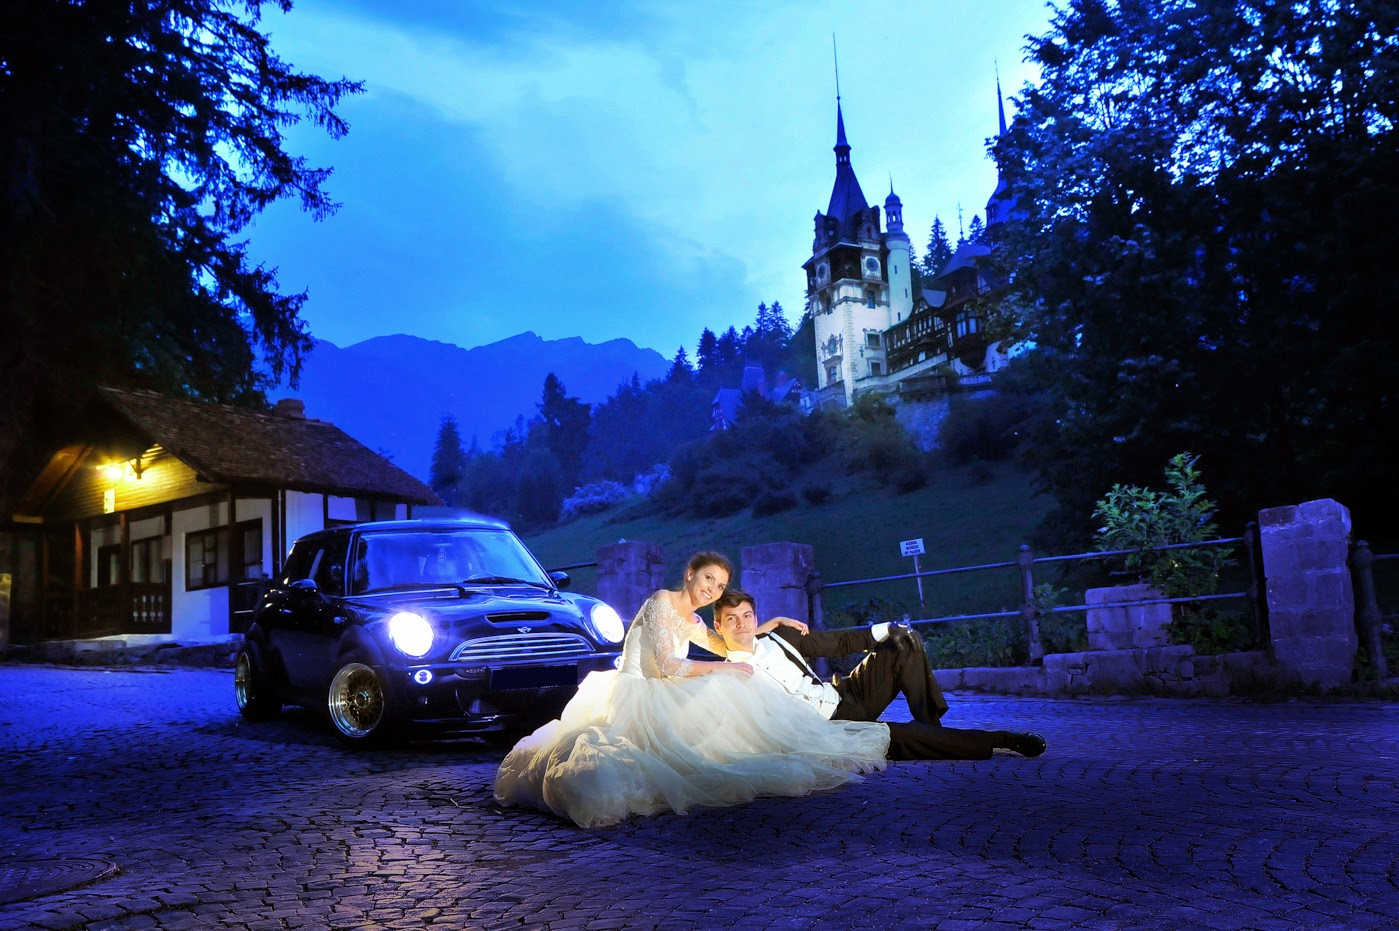 Wedding Photography at Peles Castle, Romania